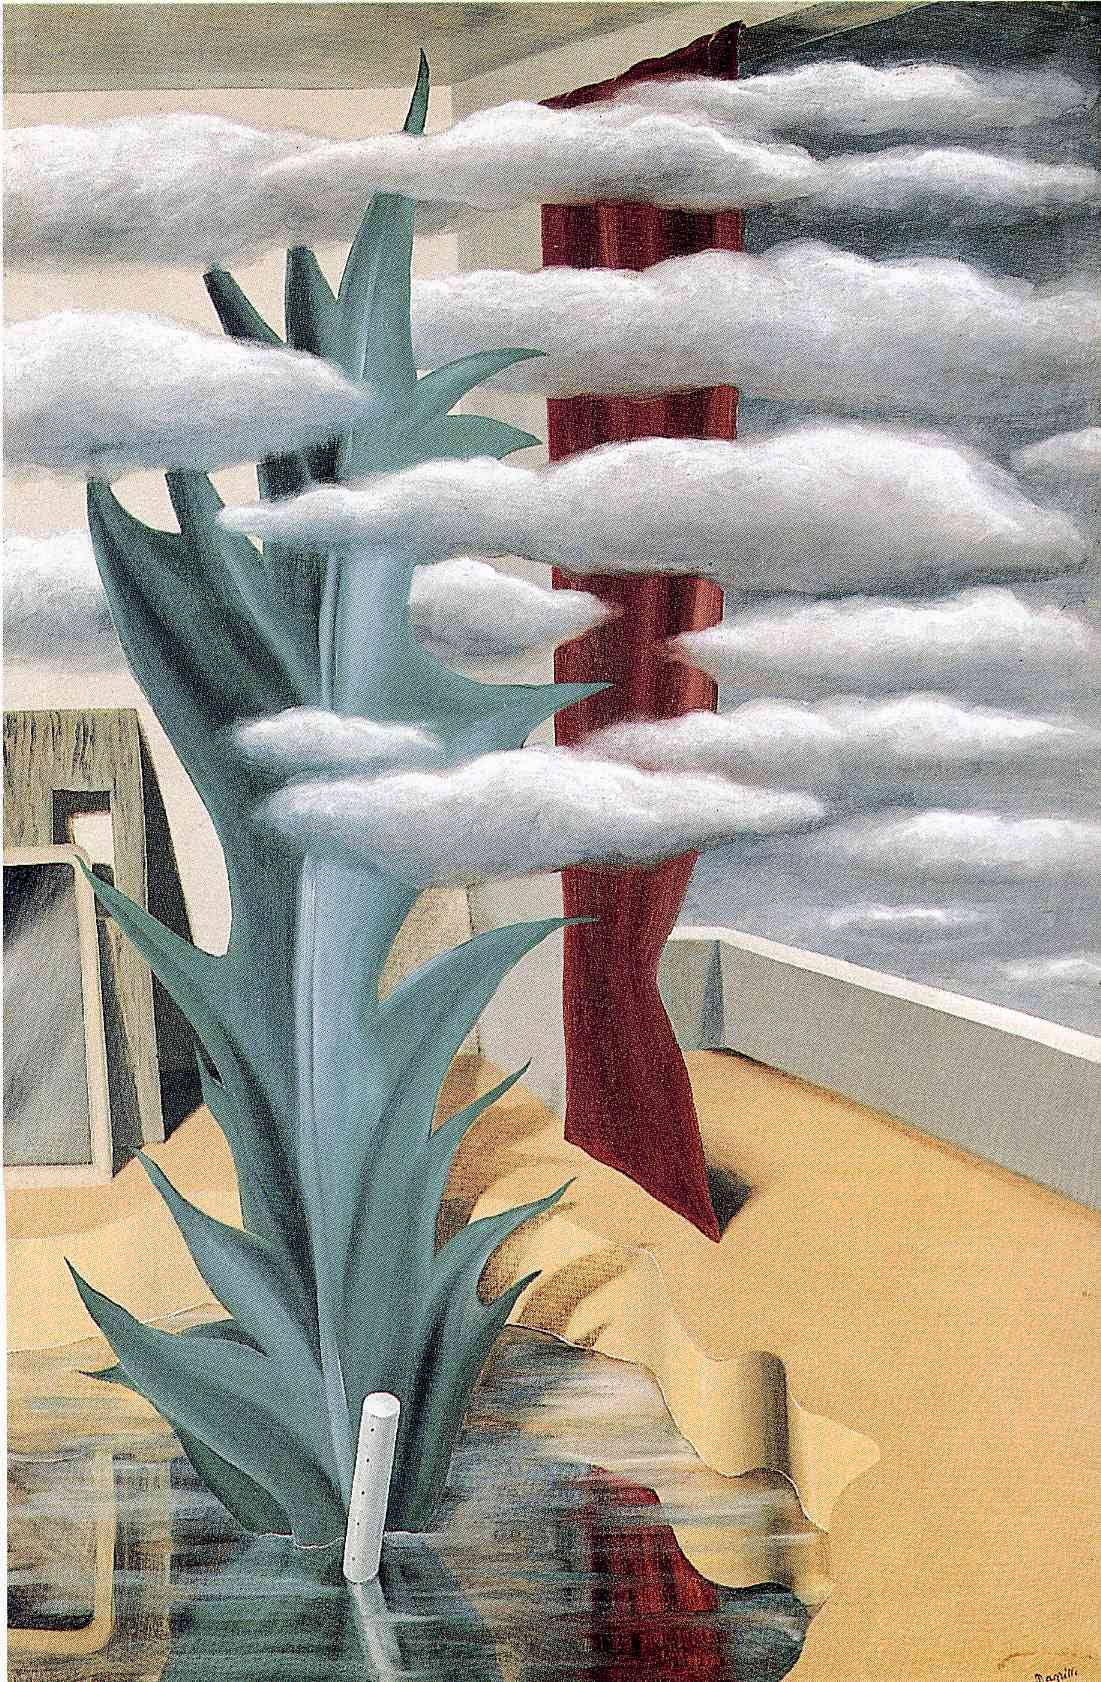 After the Water, the Clouds, 1926Rene Magritte